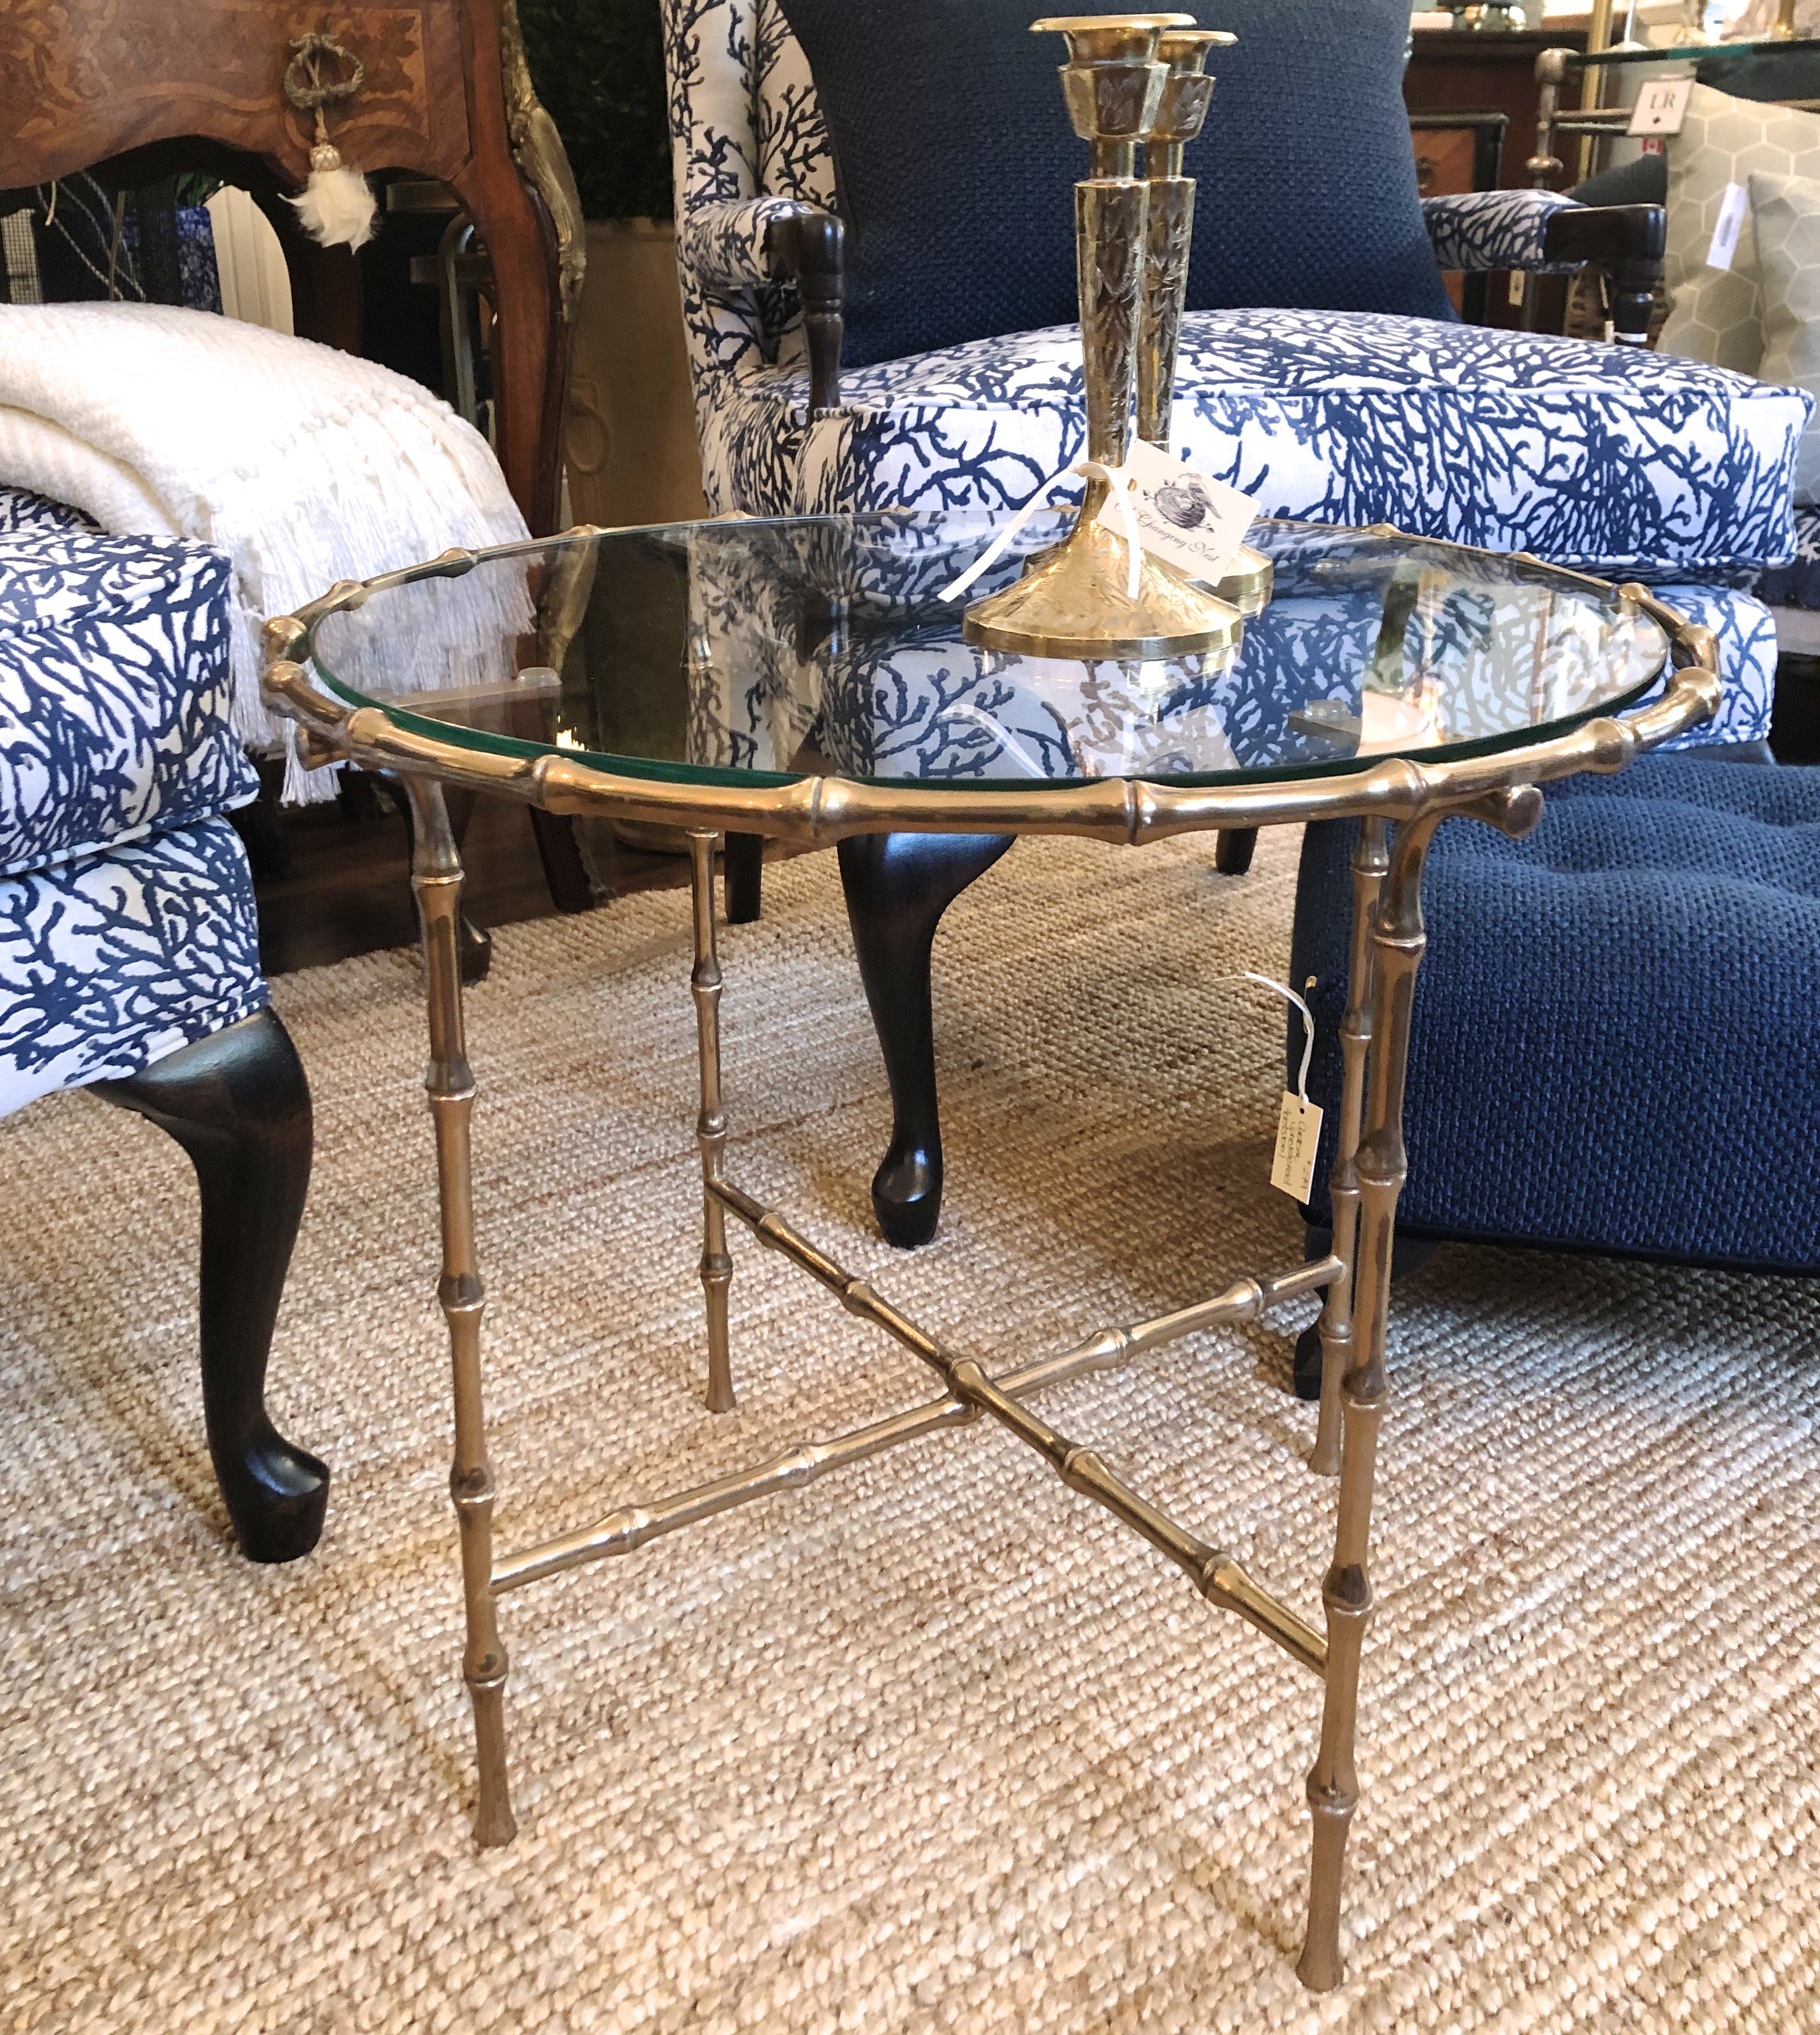 Vintage Brass End Table w/ Glass